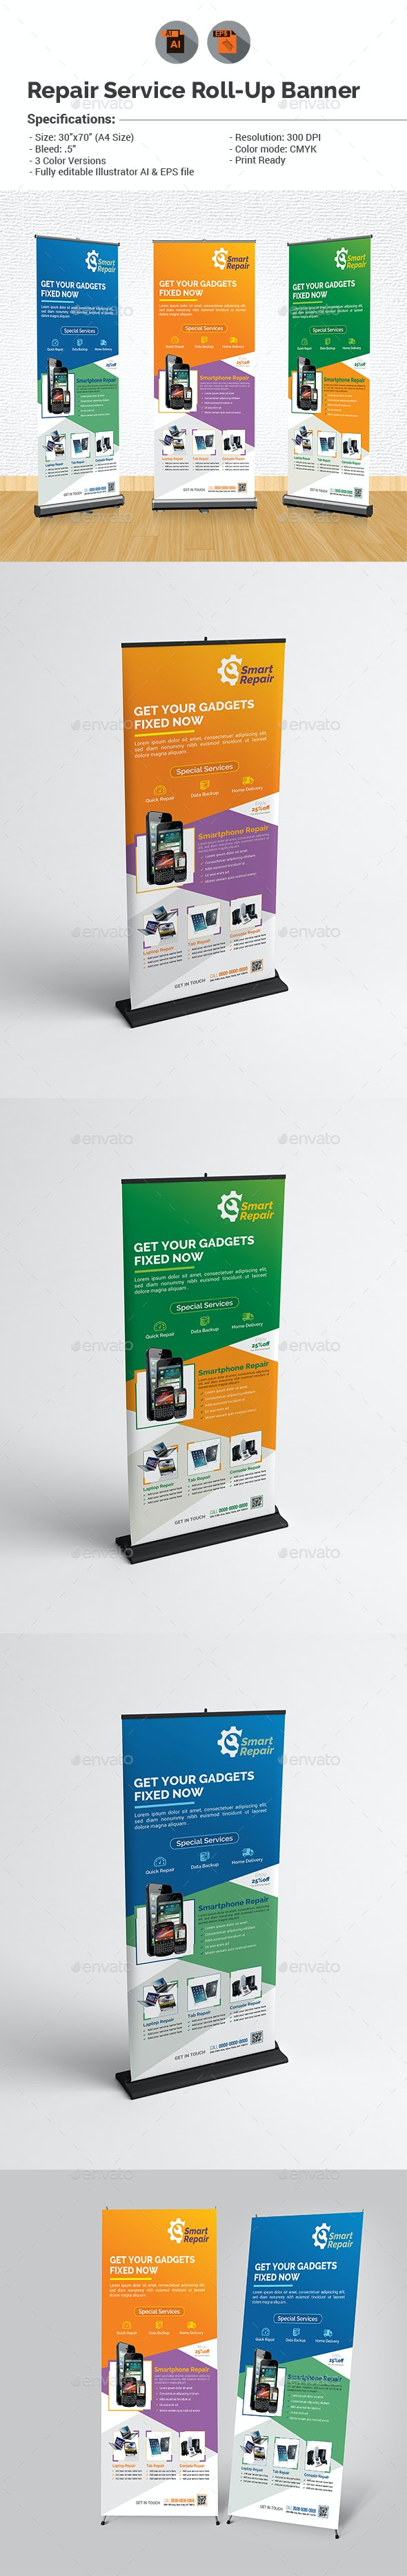 Repair Service Roll-up Banner Template - Signage Print Templates